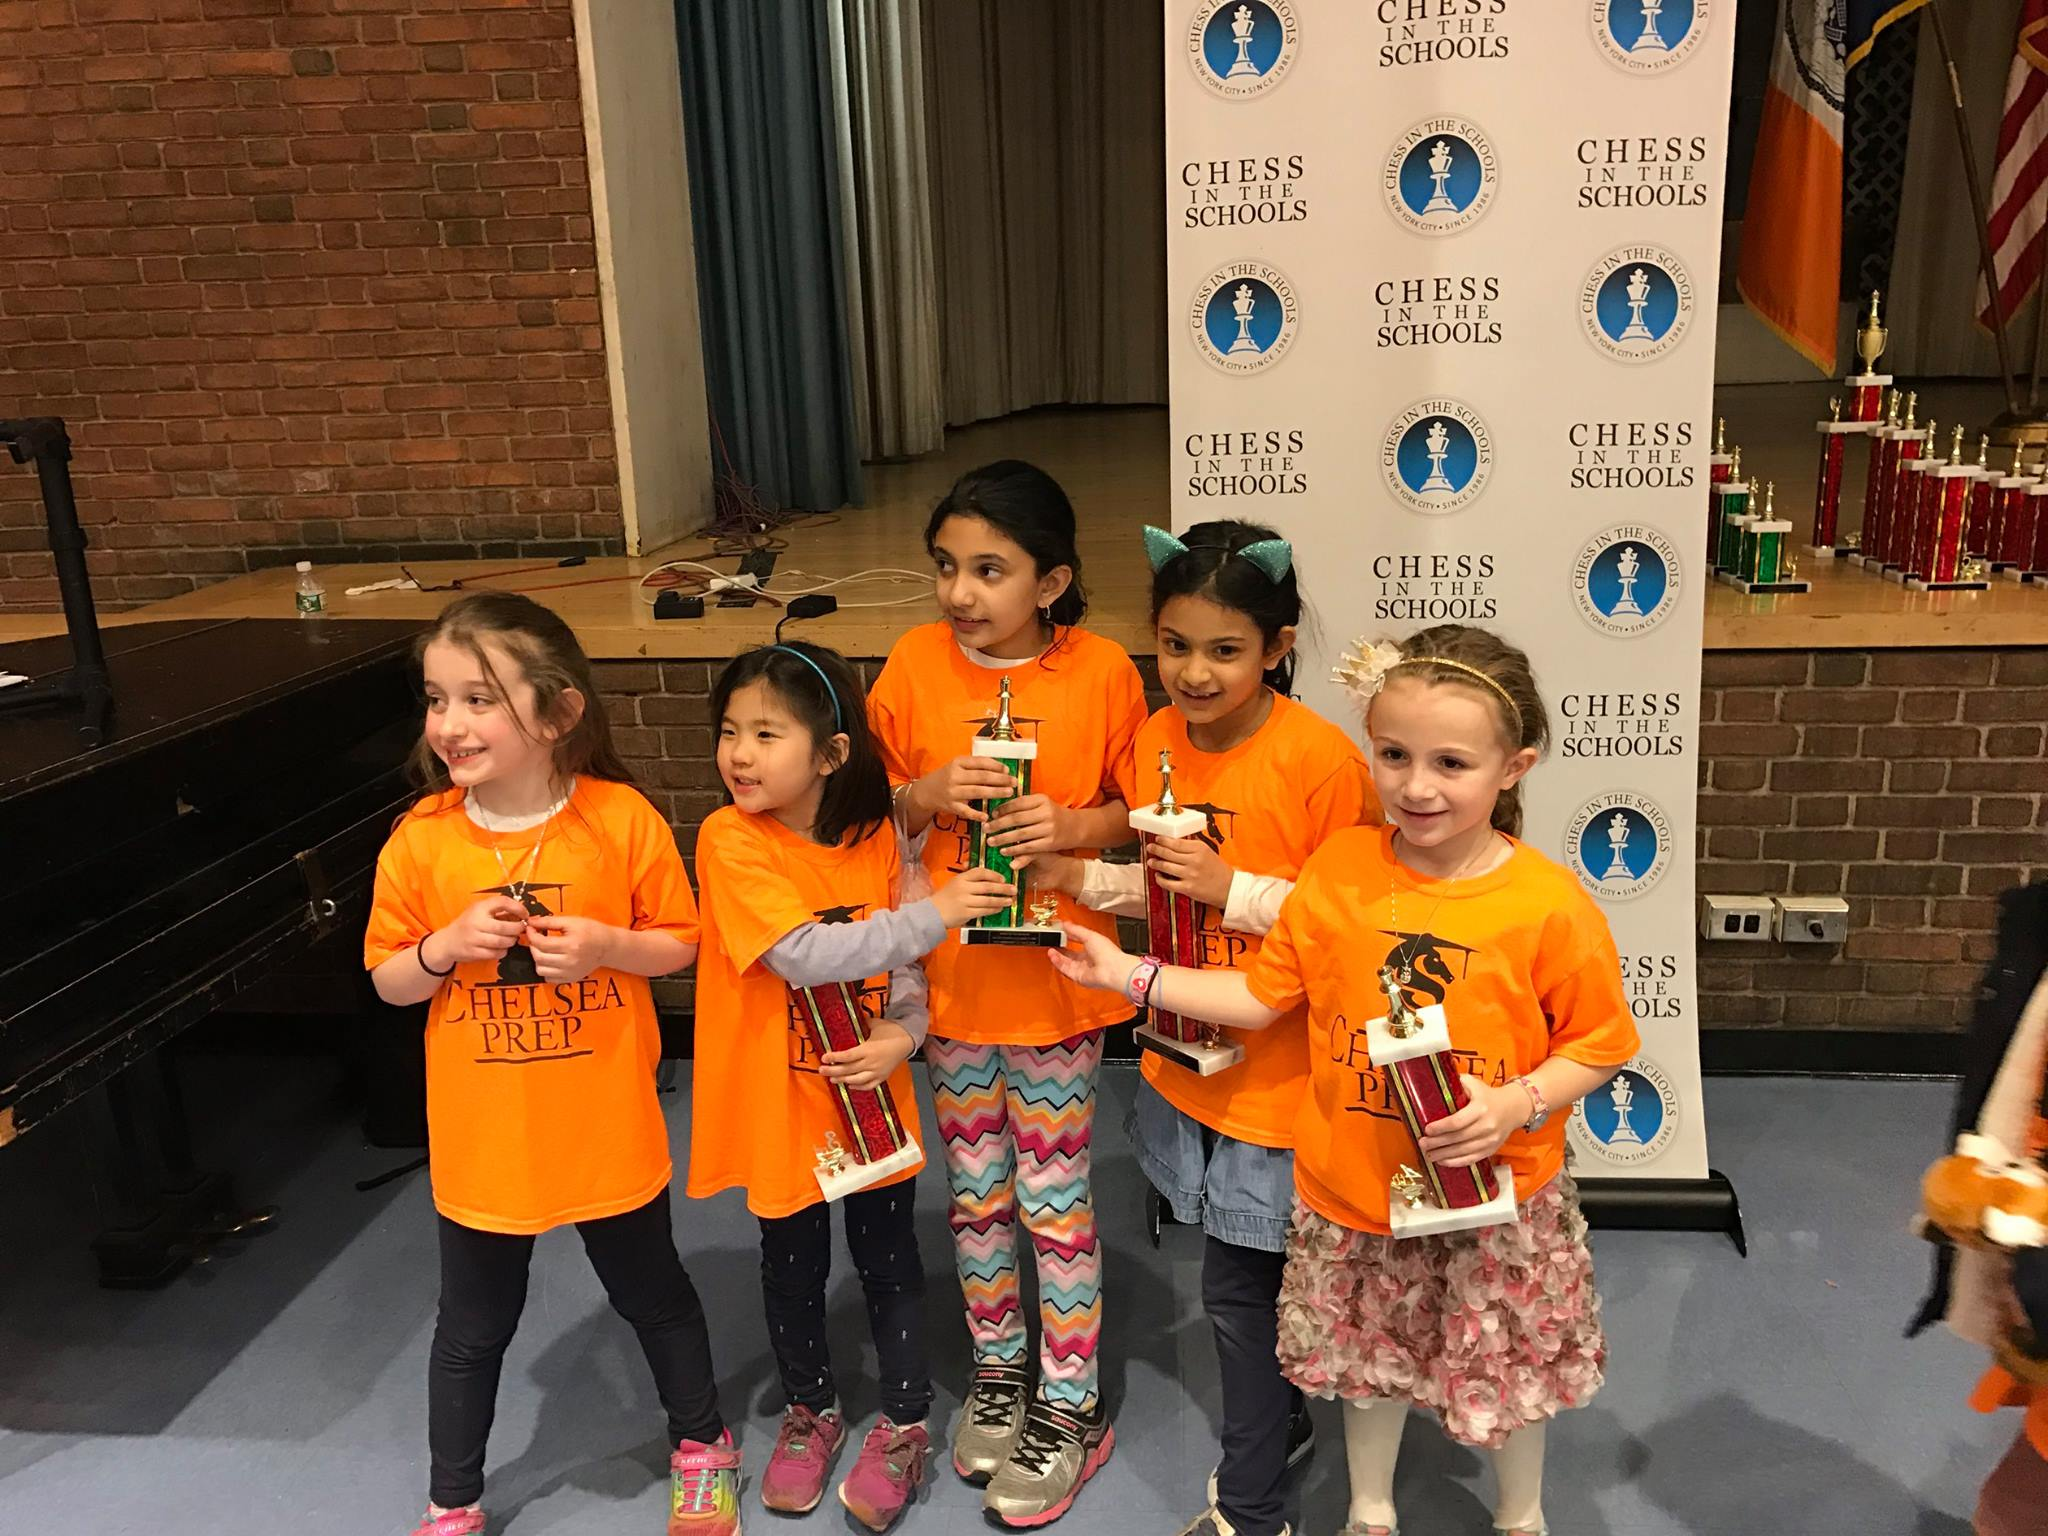 2019 CIS All Girls NYC Chess Championships at PS 11M